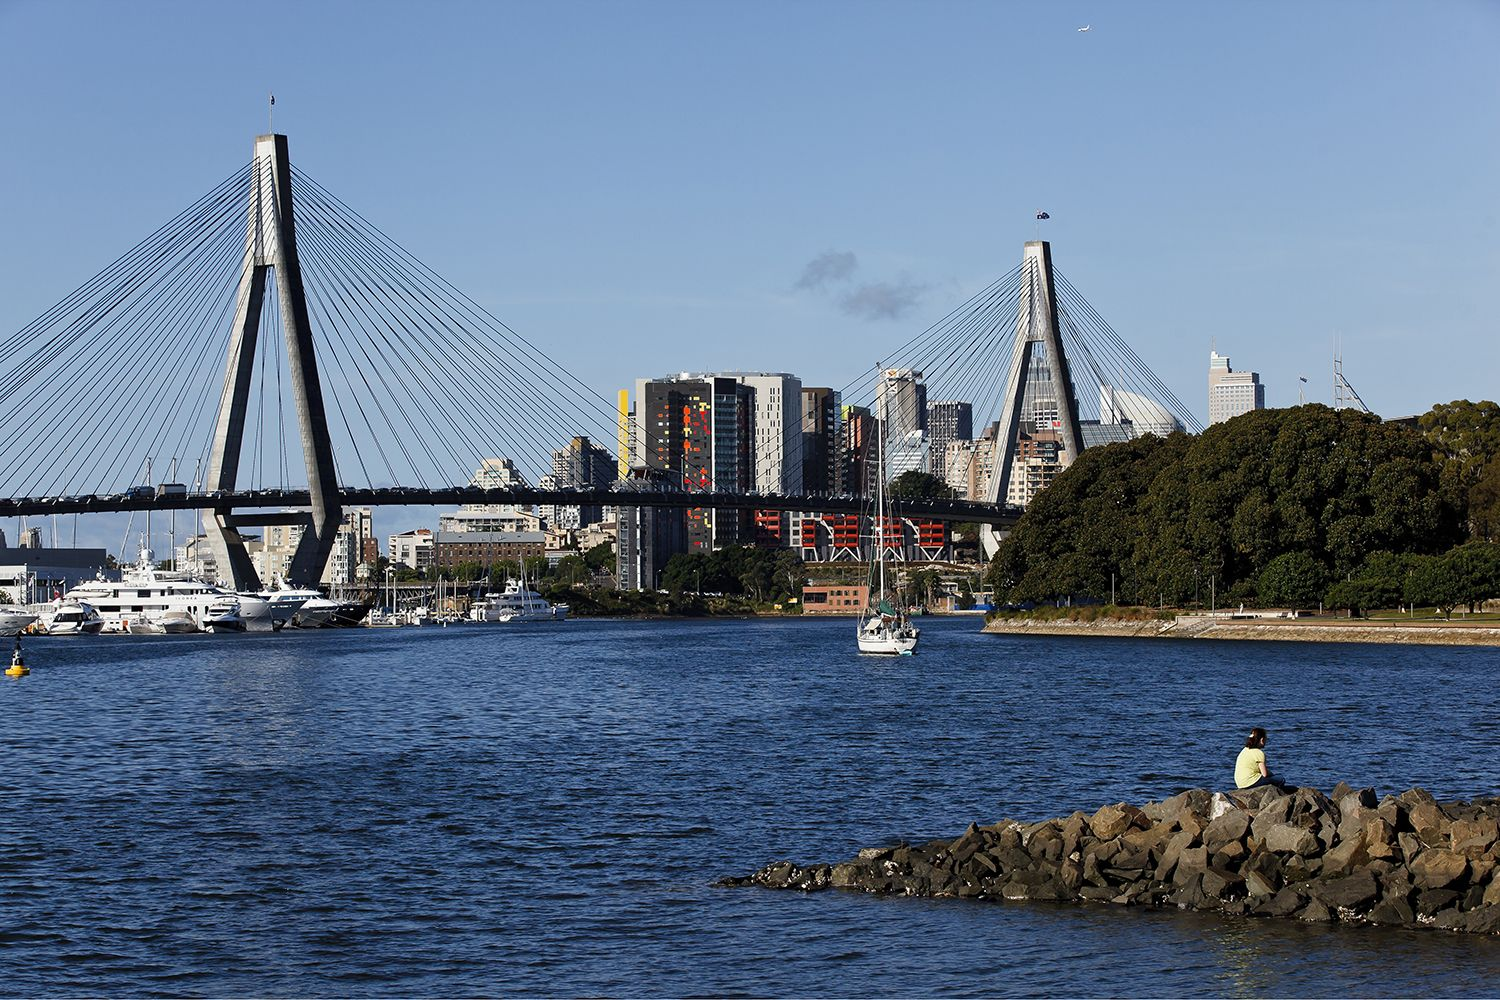 Views across Blackwattle Bay to the CBD and ANZAC Bridge from Glebe